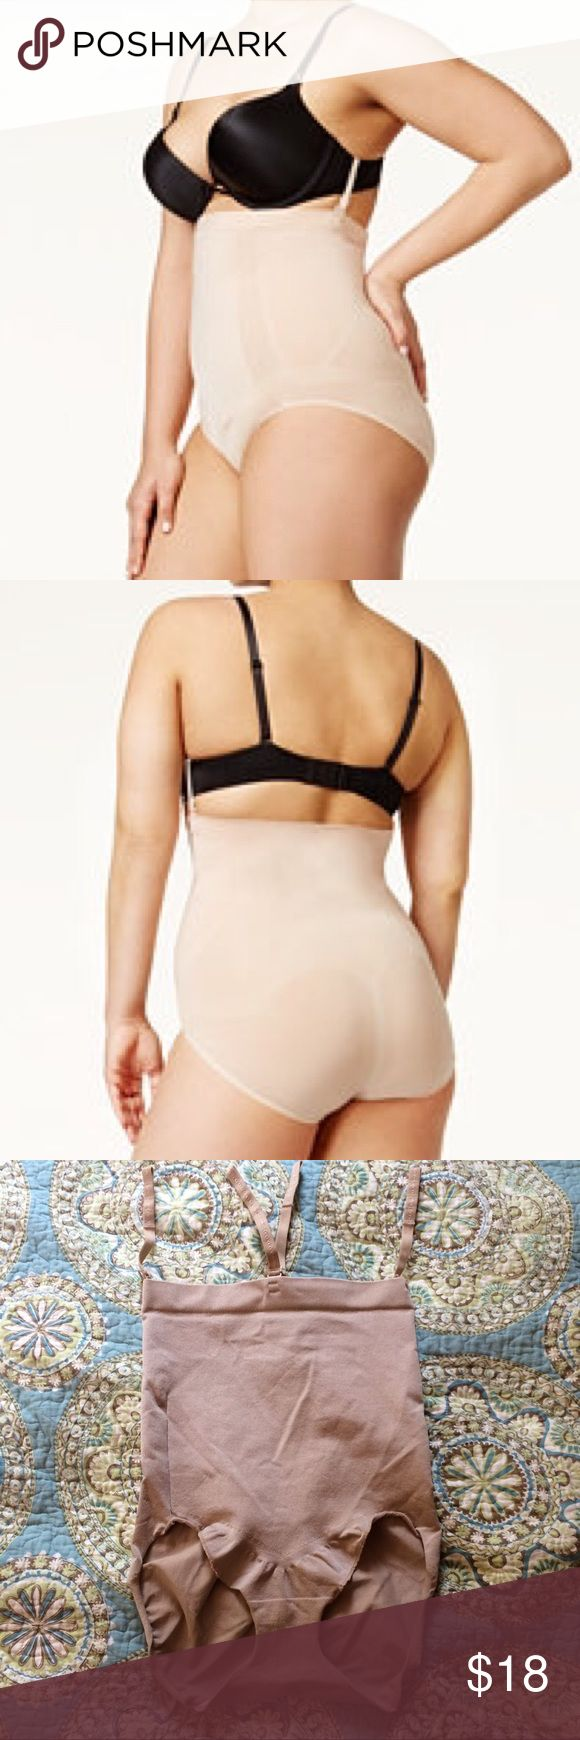 Spanx 1X Extra Firm Control Oncore High Waisted Worn Once, Spanx 1X Extra Firm Control Oncore High Waisted Brief.  These lightweight ultra comfortable high waisted briefs with removal bra straps from Spanx smooths and slims your figure. SPANX Intimates & Sleepwear Shapewear